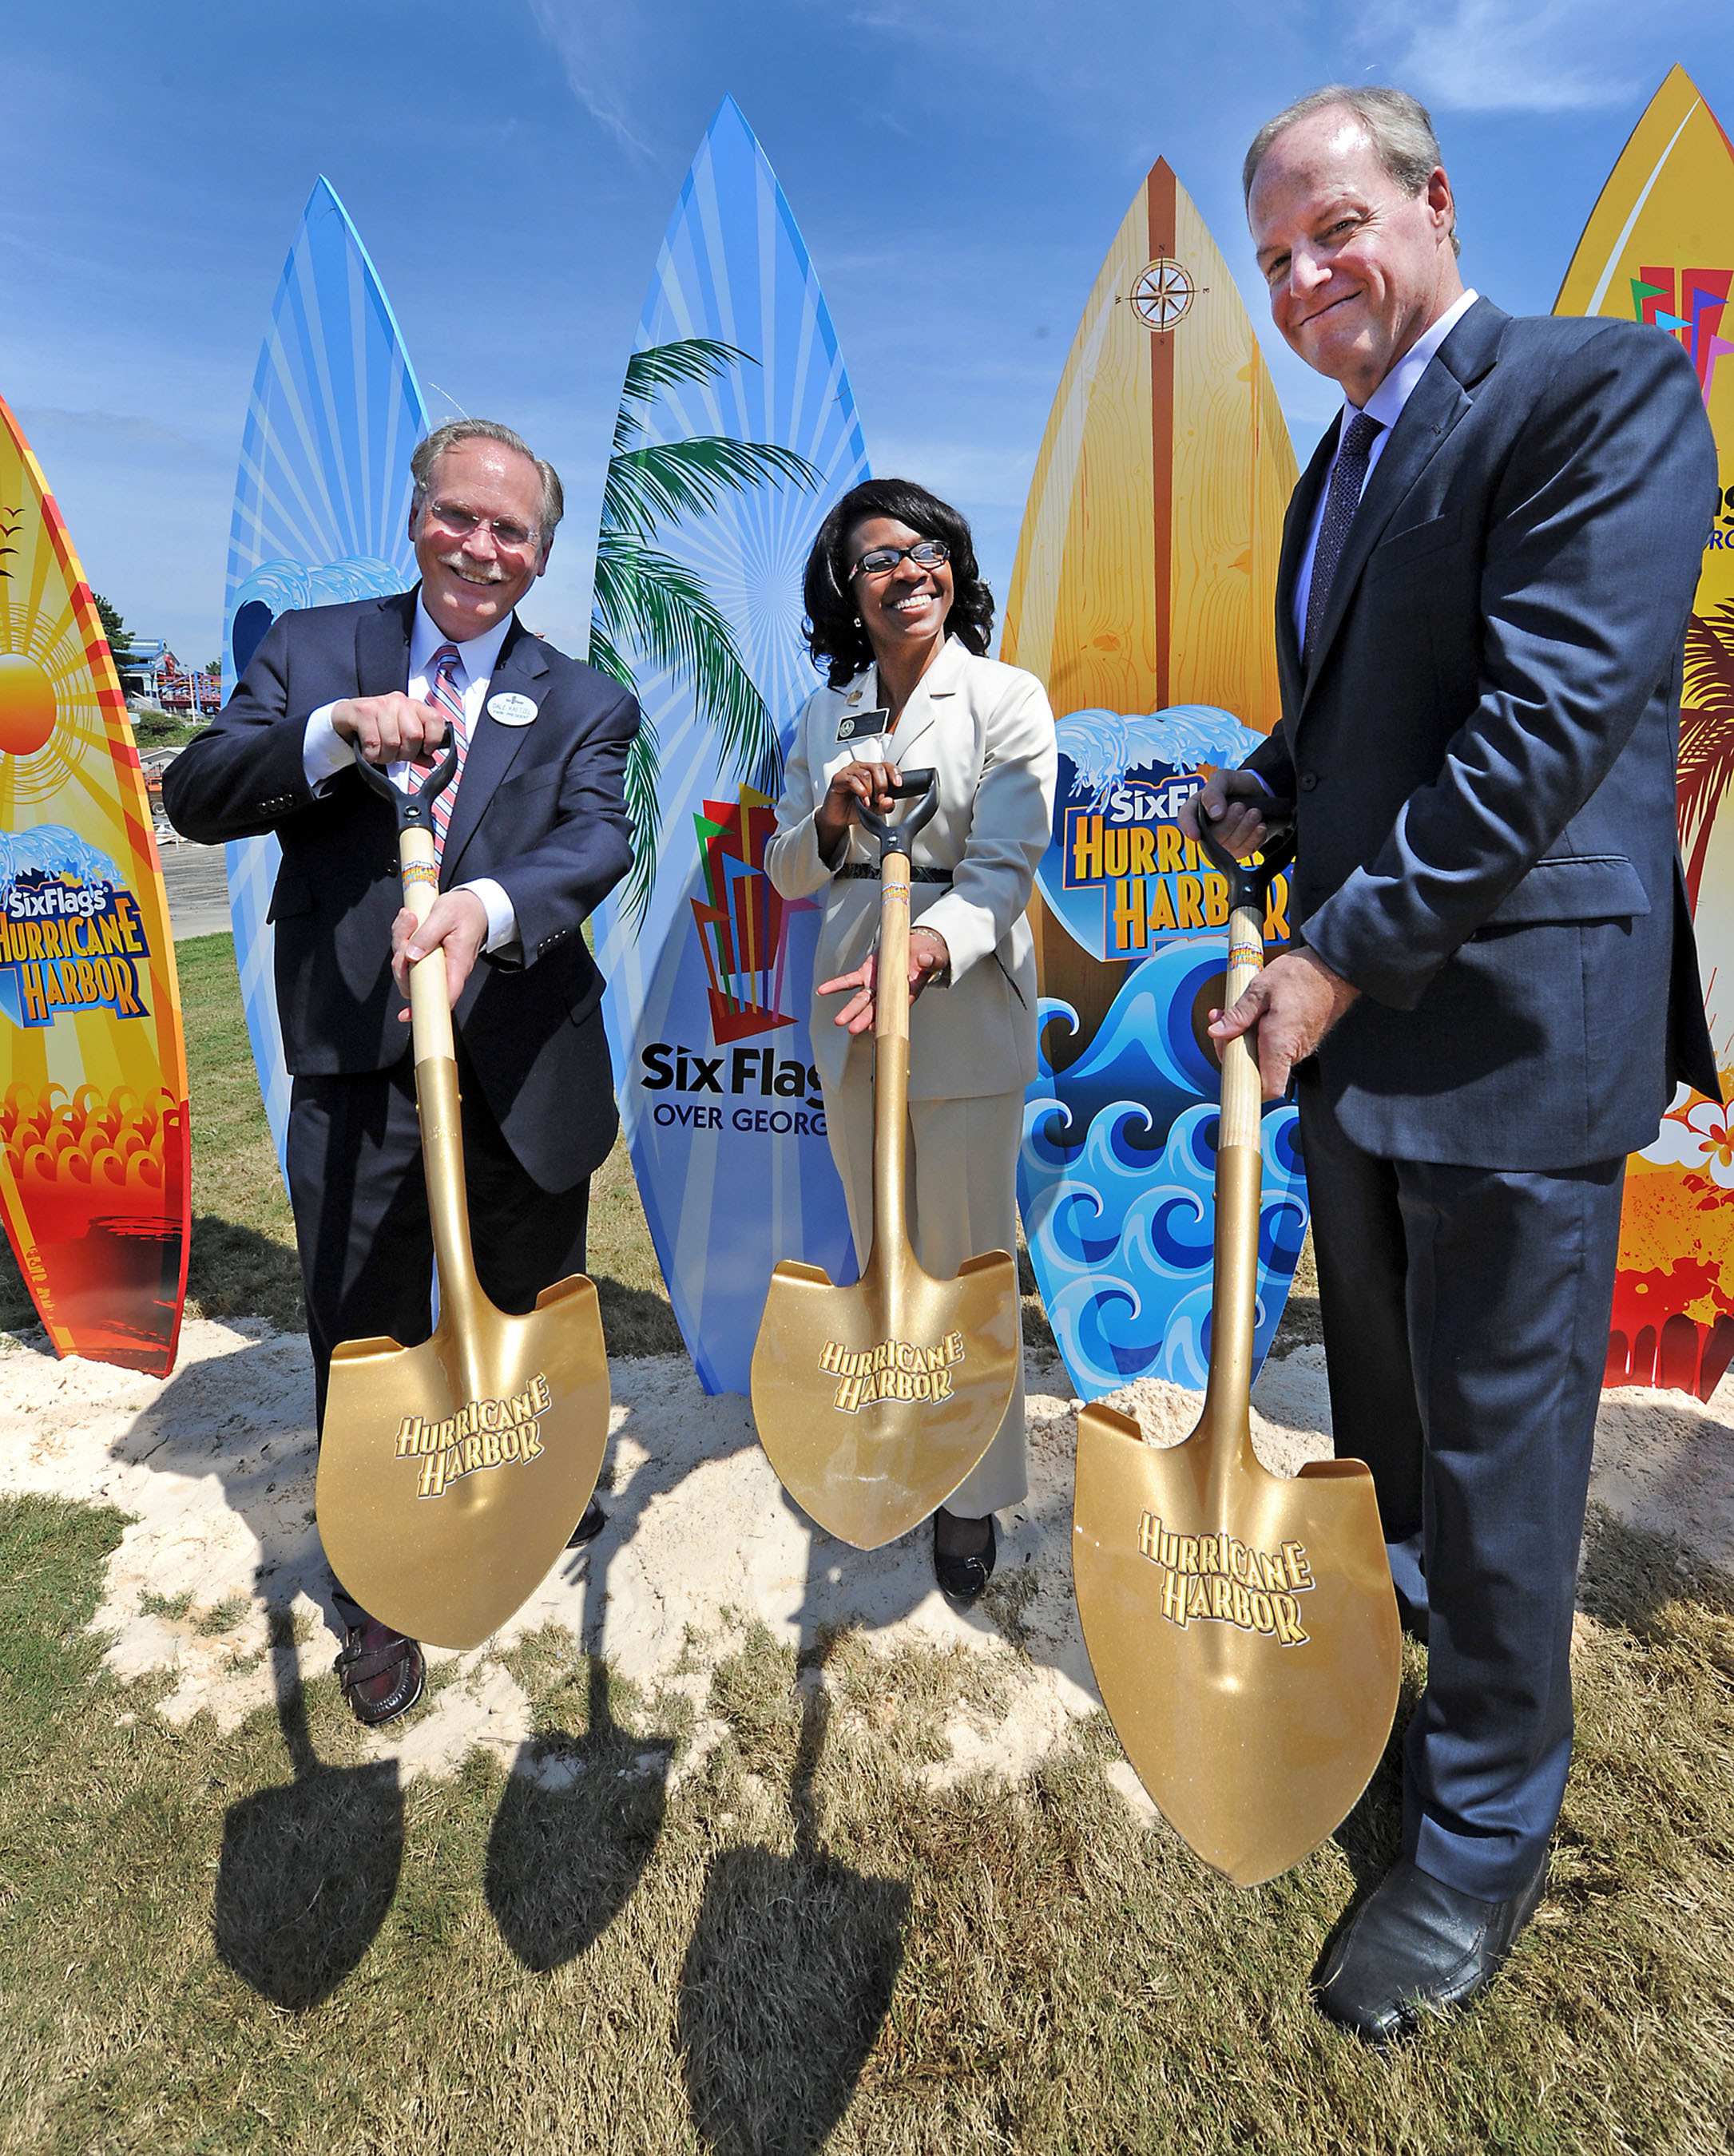 Dale Kaetzel (Left) Six Flags Over Georgia, Park President along with Lisa Cupid (Center) Cobb County Commissioner and John Odum (Right) Senior Vice President Six Flags Park Operations, East Coast, celebrate the ground breaking of Six Flags Over Georgia's Hurricane Harbor due to open in May 2014. The ceremony was symbolically held in conjunction with South Cobb Redevelopment Conference. Six Flags Over Georgia recorded an economic impact of $175 million for its 2012 season. Hurricane Harbor is the largest capital investment from Six Flags Entertainment Corporation for 2014. (HO -- Photo: Michael Pugh). (PRNewsFoto/Six Flags Over Georgia, Michael Pugh) (PRNewsFoto/SIX FLAGS OVER GEORGIA)